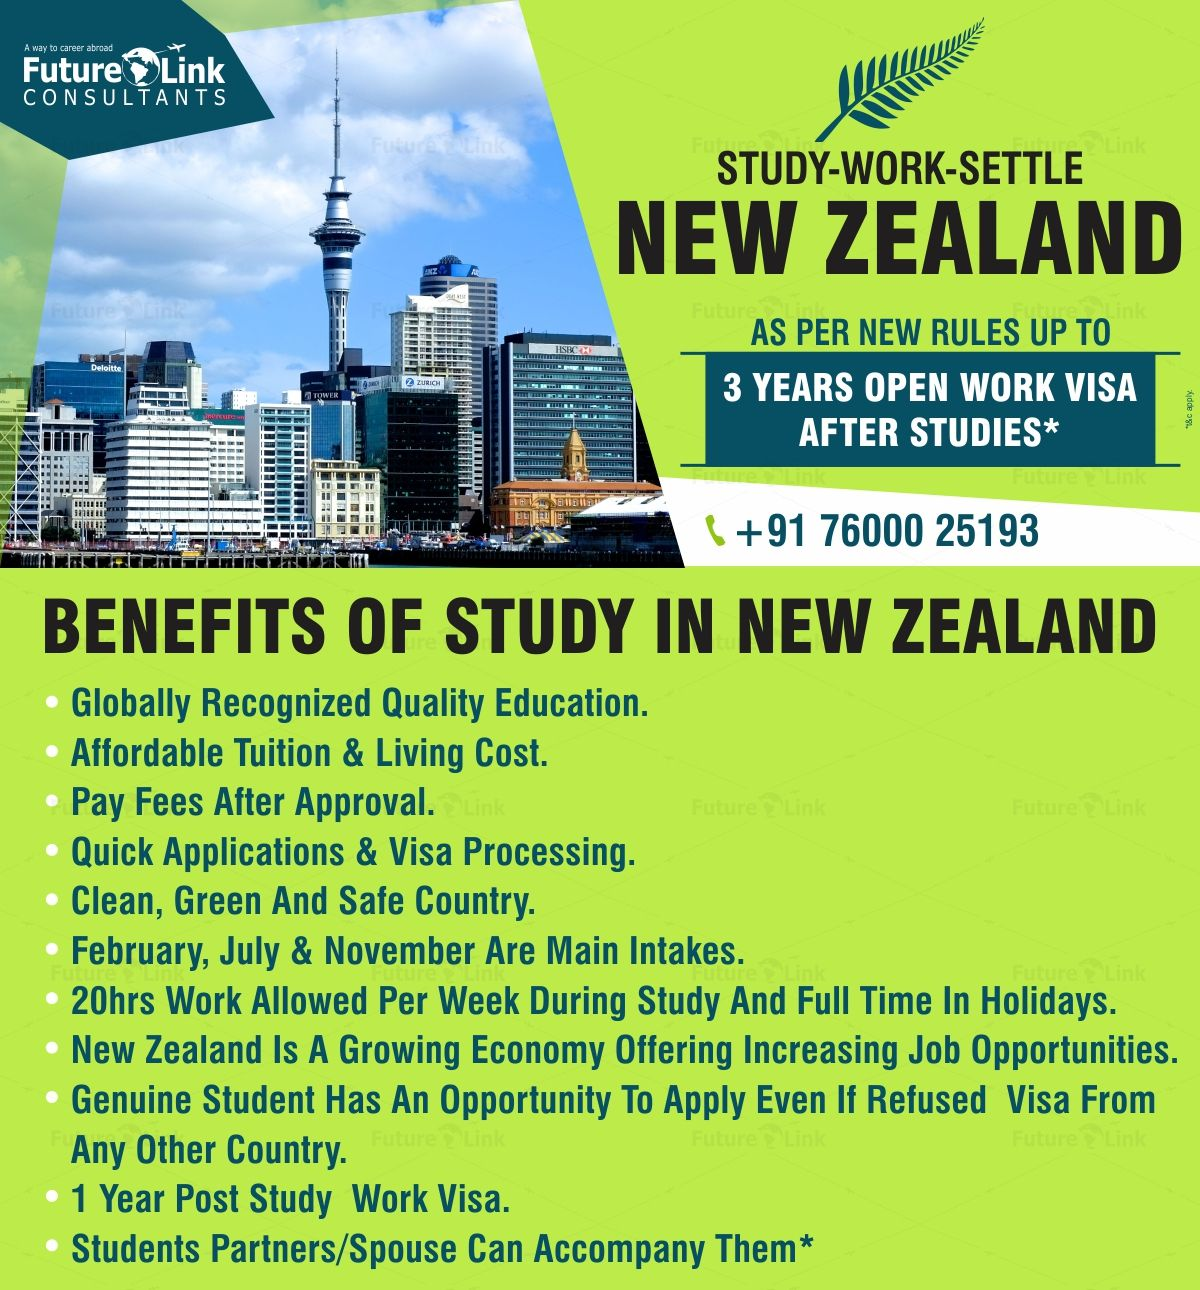 Study In New Zealand And Get An Opportunity To Have A Post Study